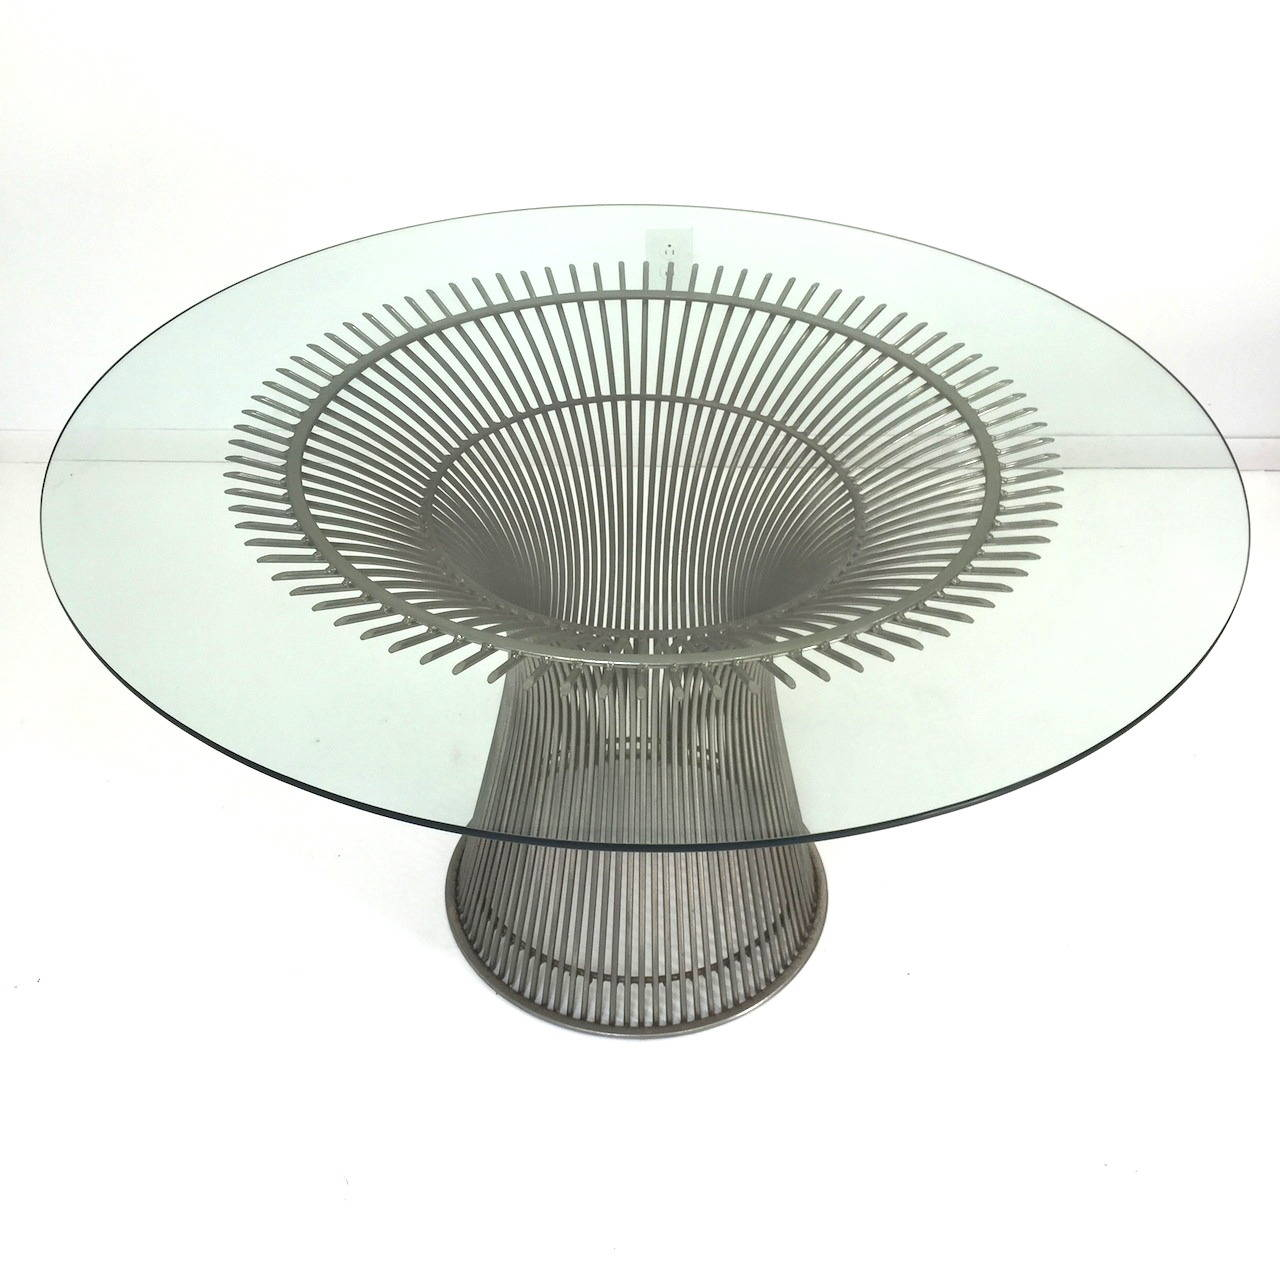 Vintage Knoll Warren Platner Glass Top Dining Table at 1stdibs : IMG3594l from www.1stdibs.com size 1280 x 1280 jpeg 136kB